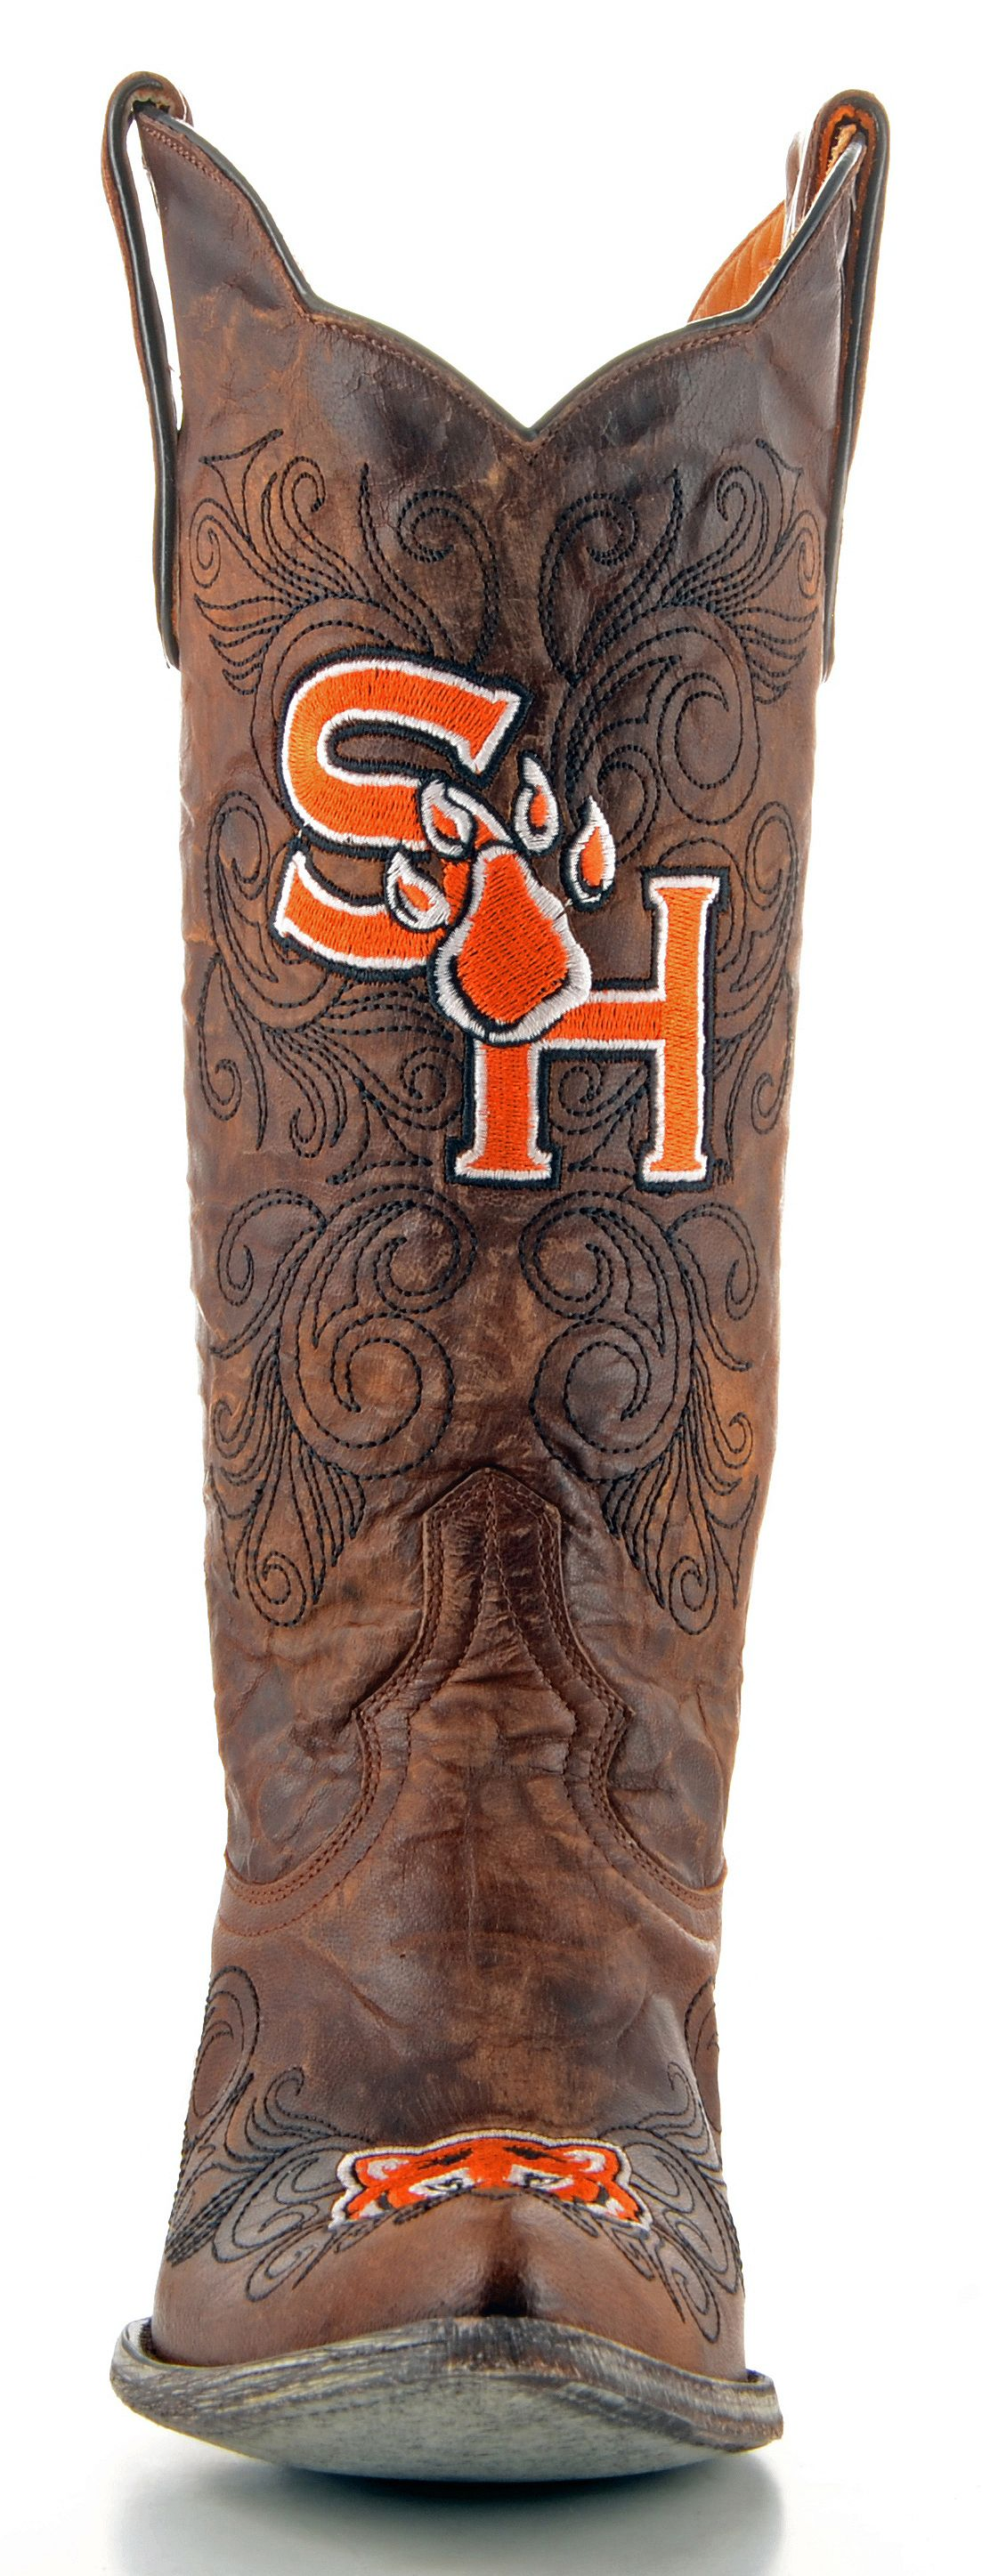 127f44ce10d74c Gameday Sam Houston State Cowgirl Boots - Pointed Toe - Country ...